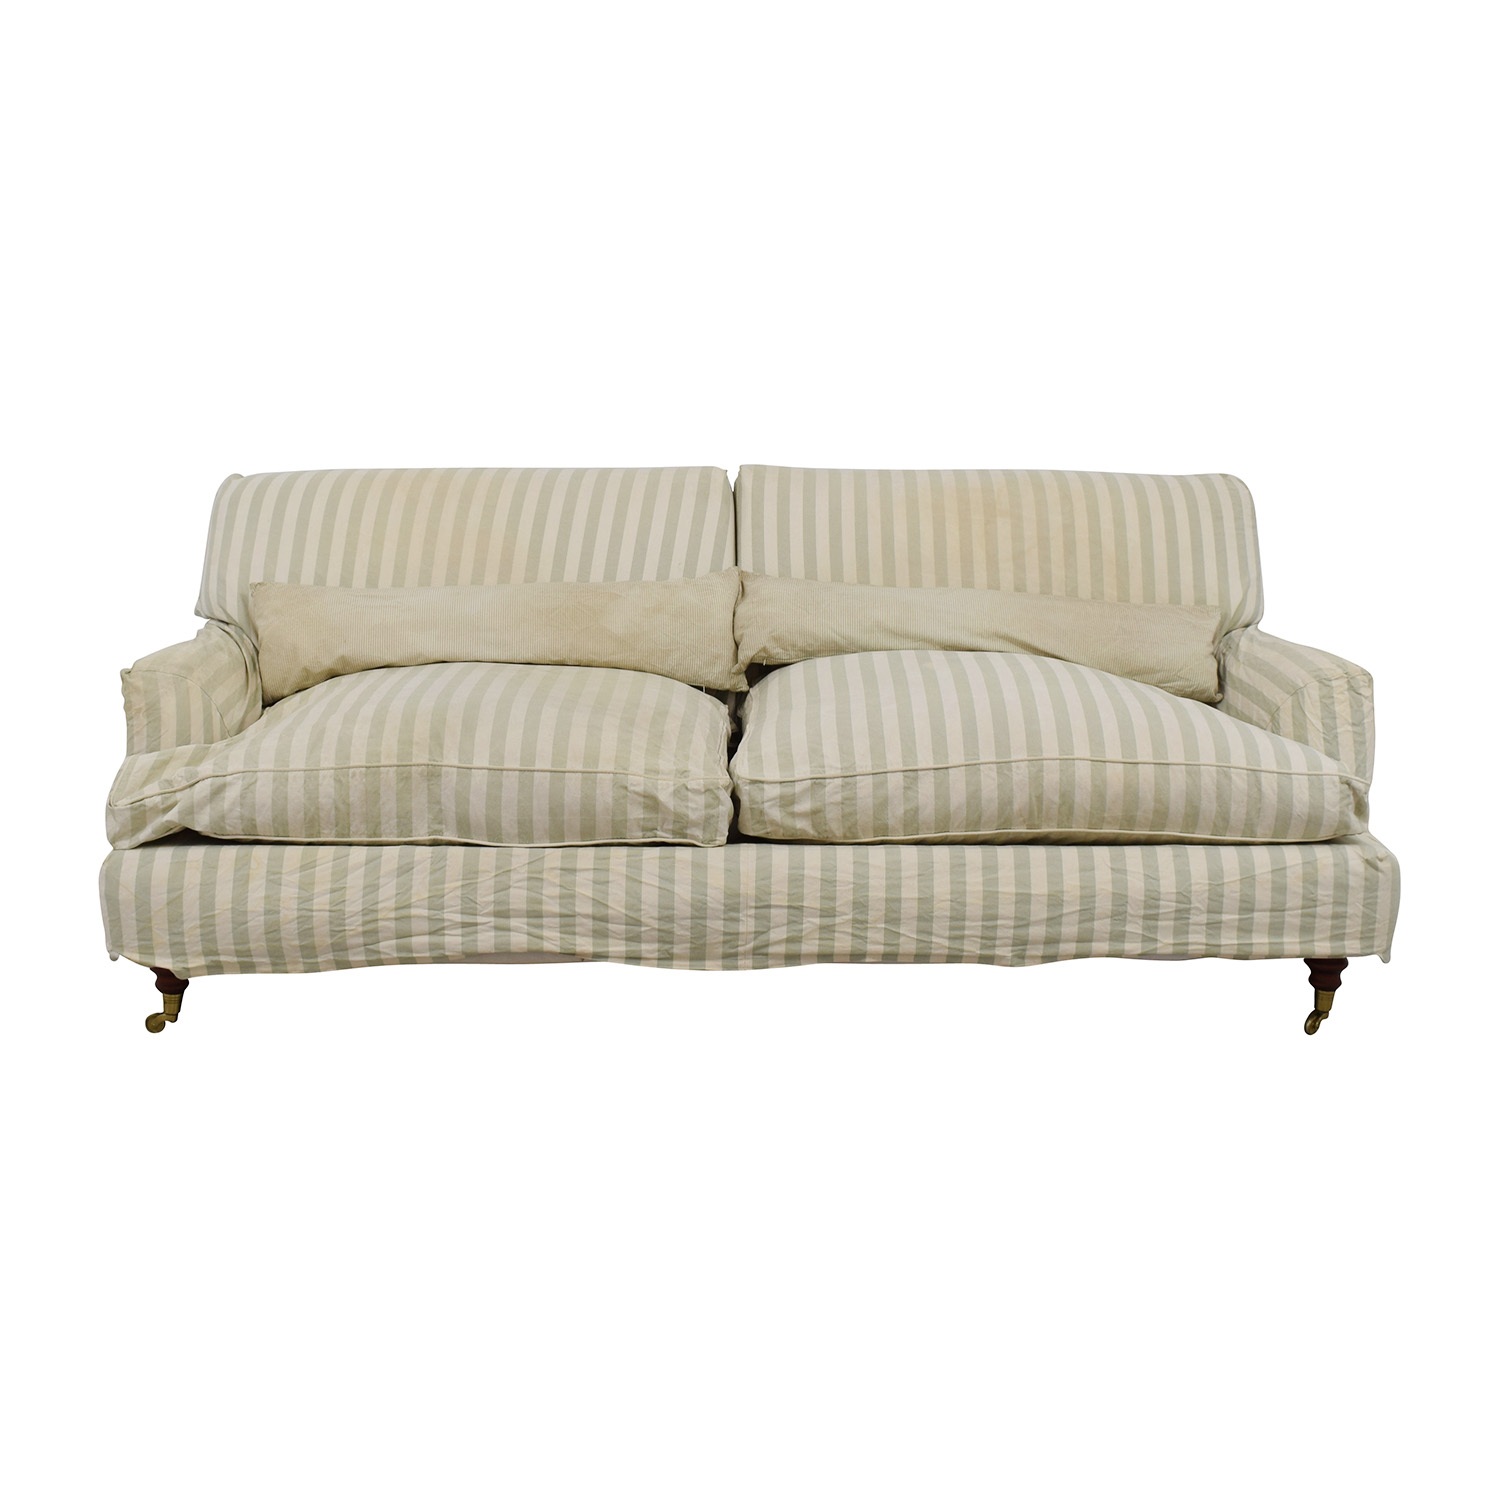 Green Striped Sofa Moud Letini Striped Sofa Thesofa